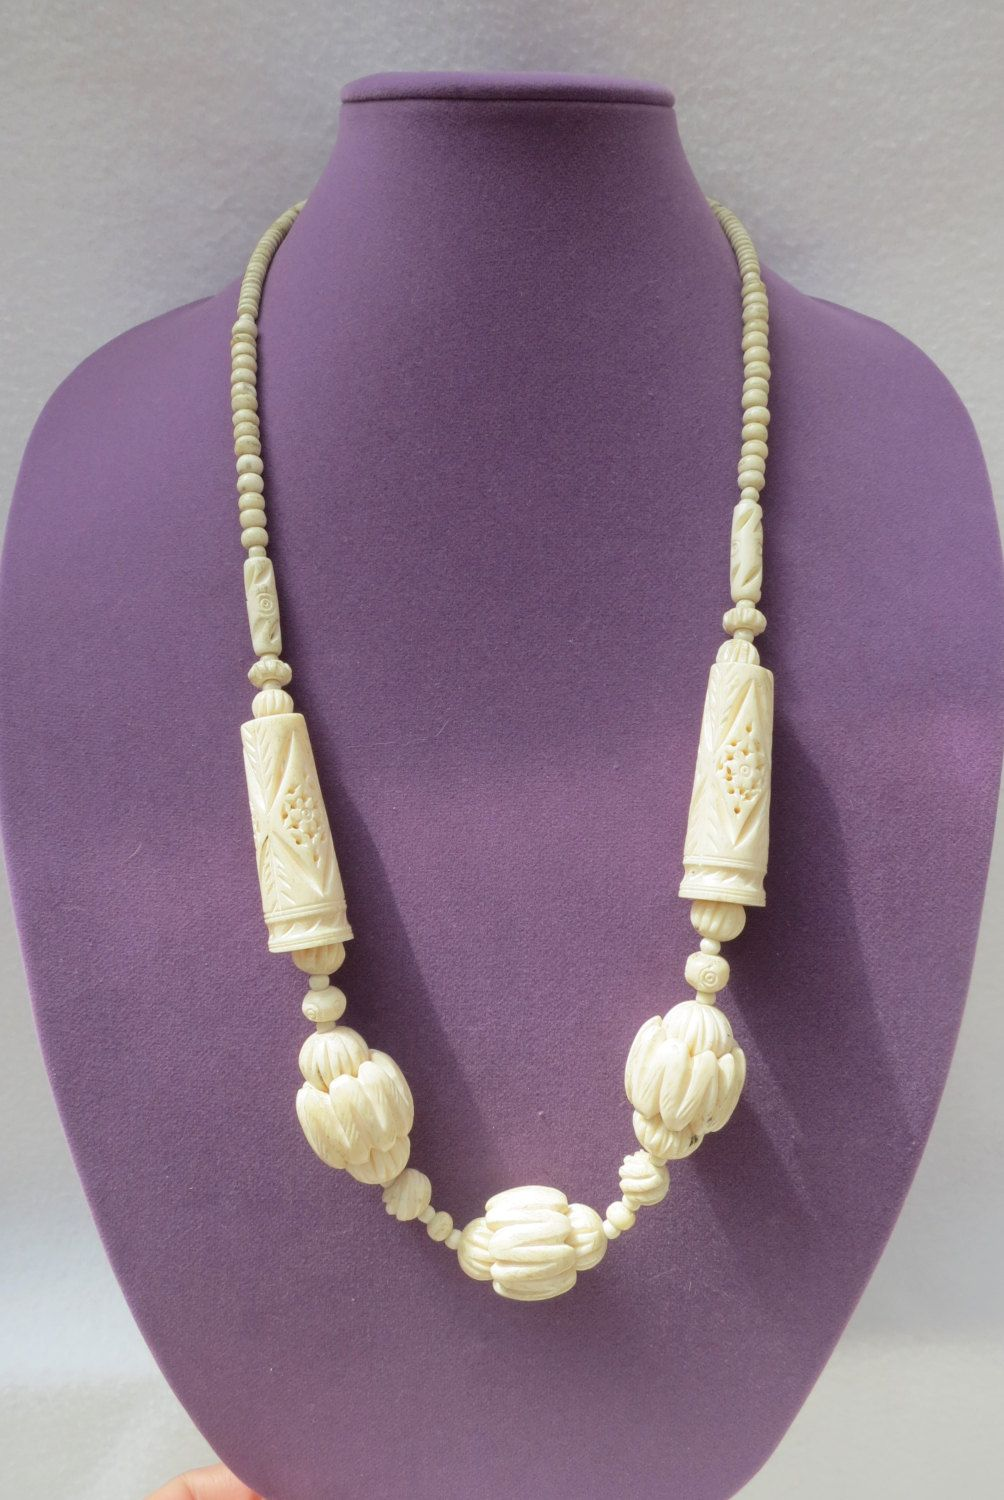 Long beautifully decorated bone necklace by Framarines on Etsy